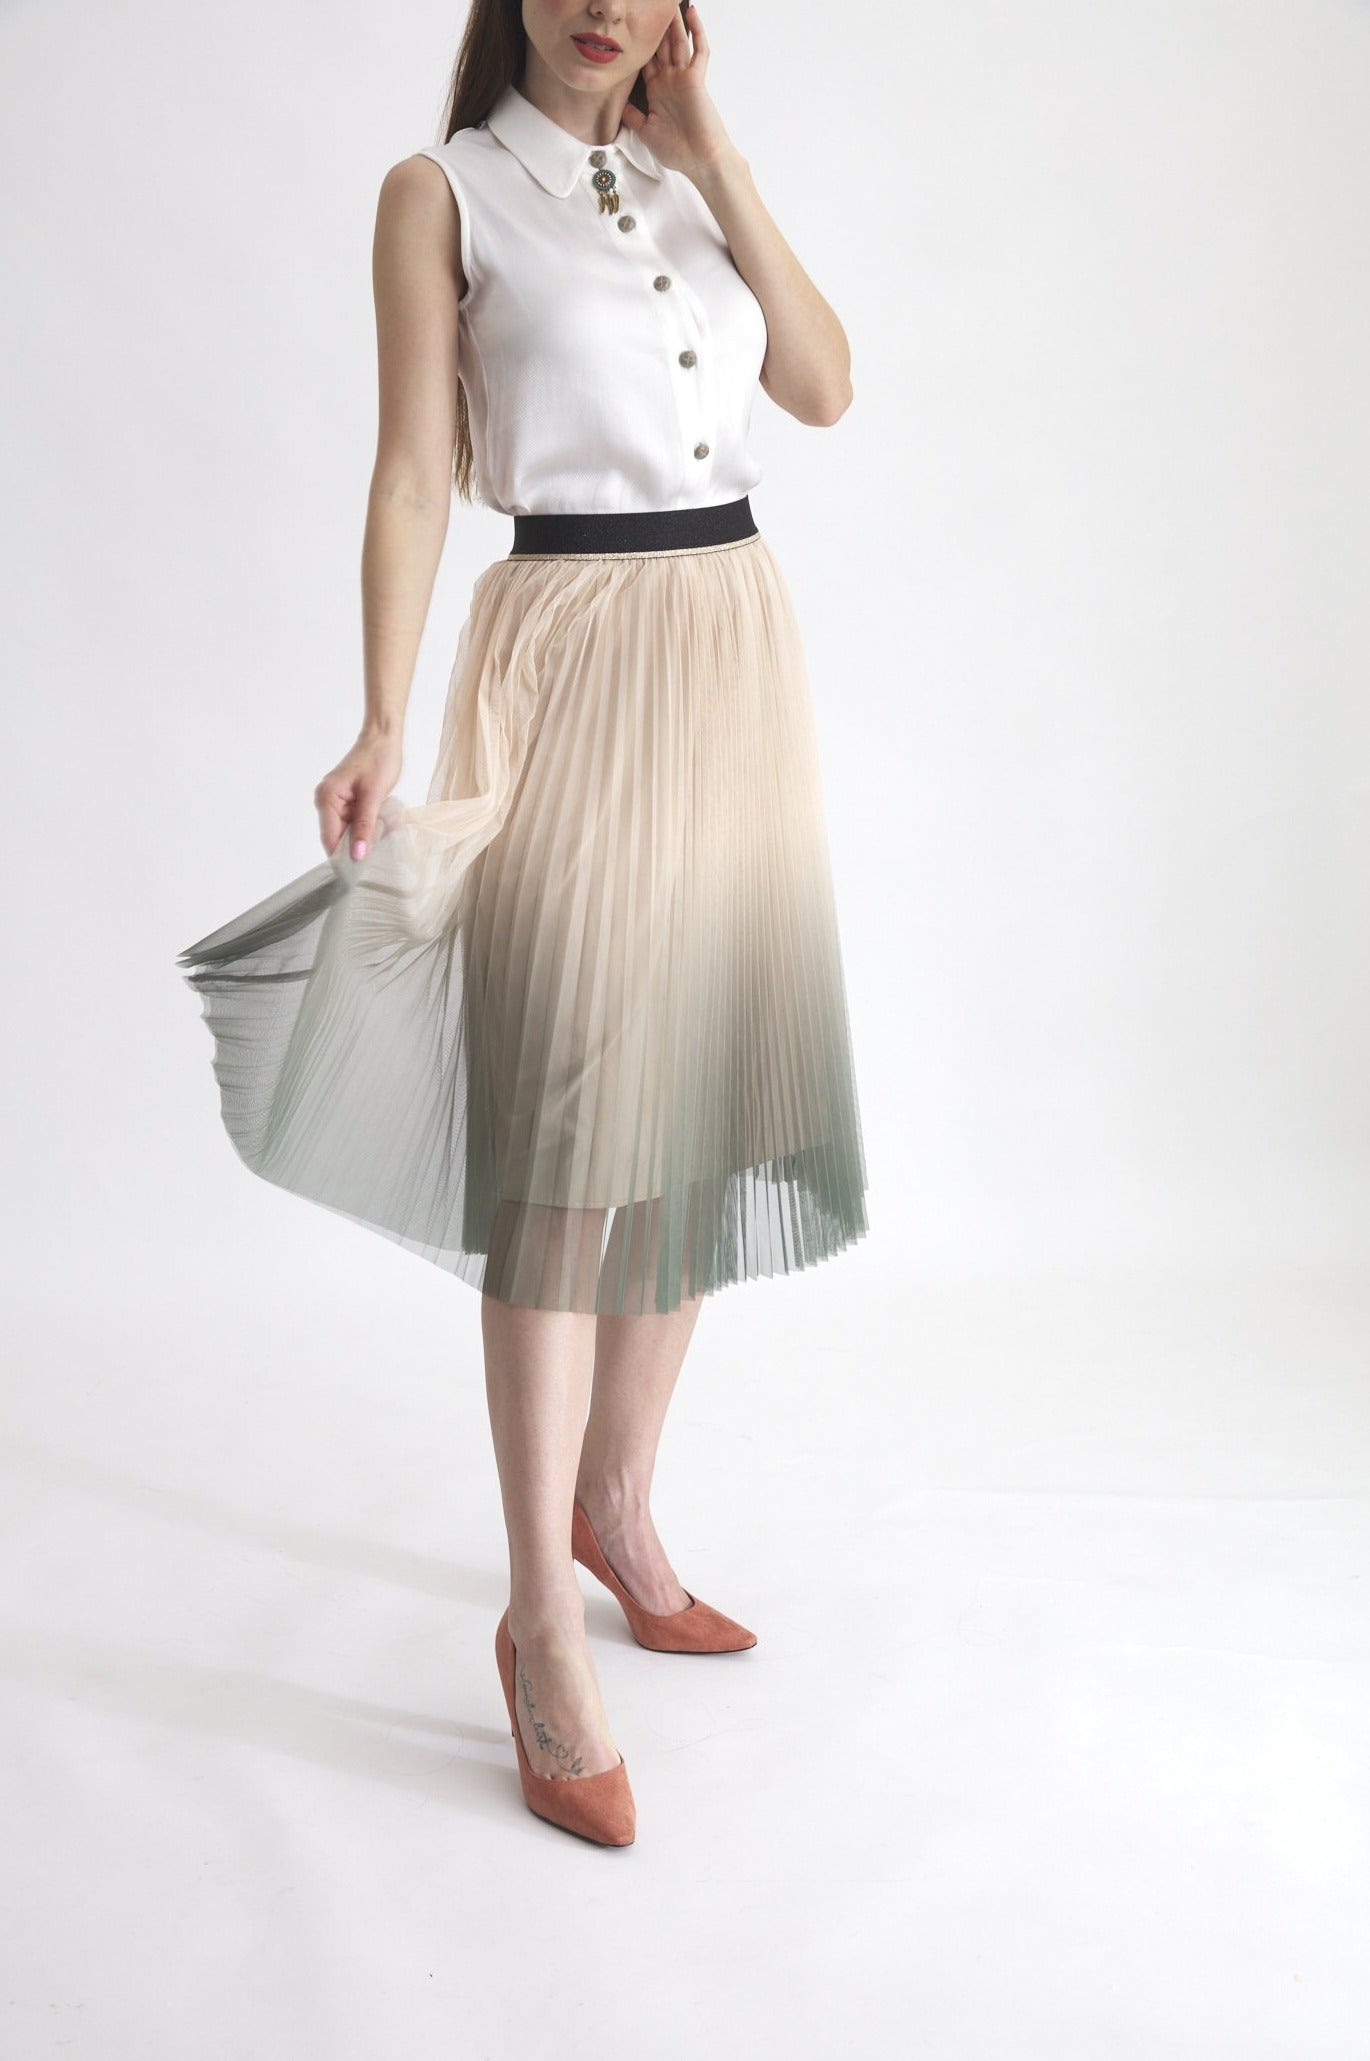 Gran Canaria Tulle Skirt